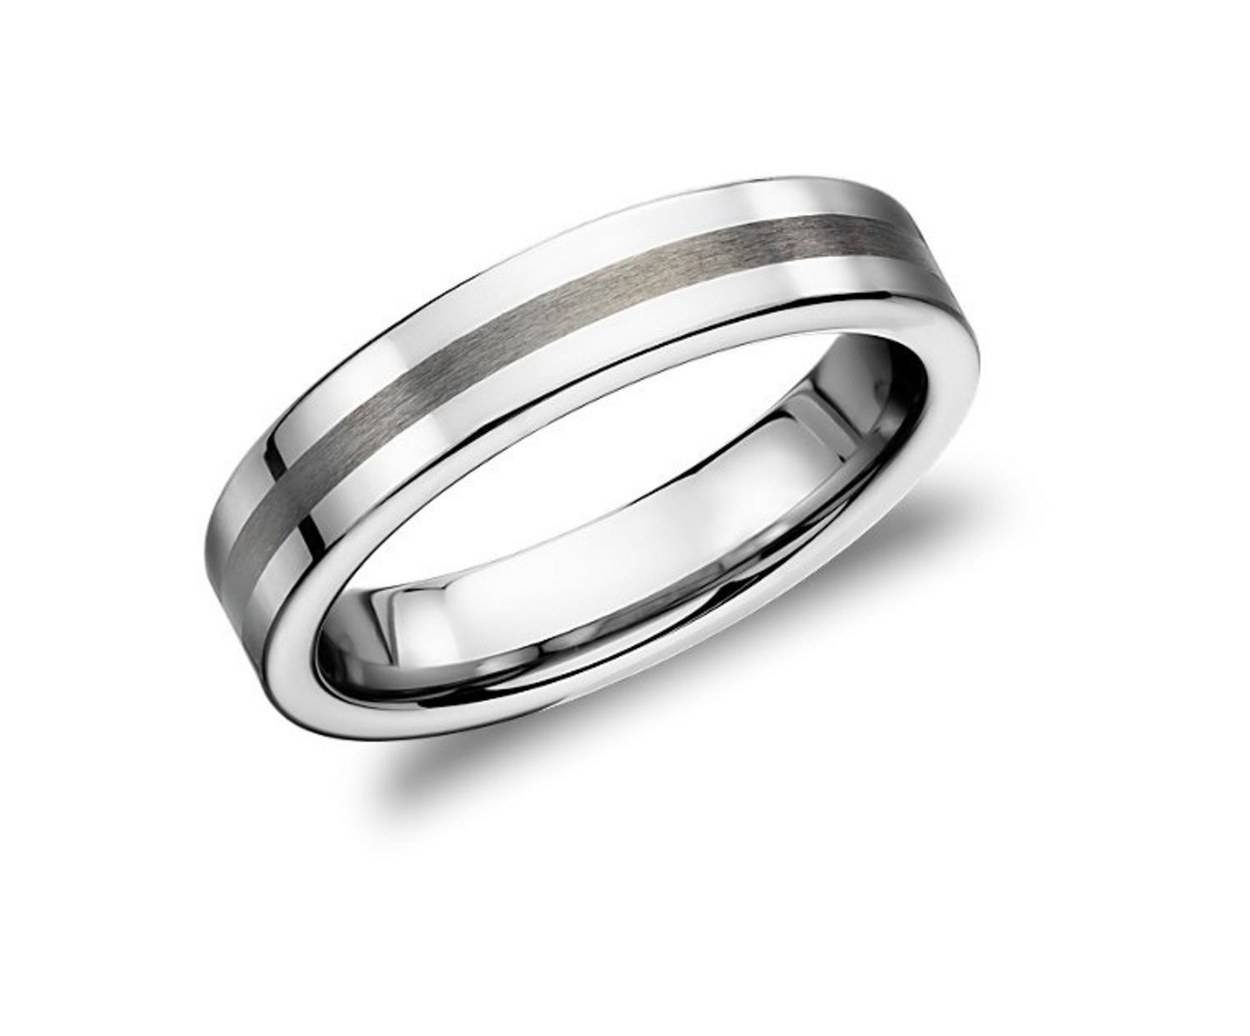 15 Men's Wedding Bands Your Groom Won't Want To Take Off | Glamour Intended For Men's Wedding Bands Metals (View 2 of 15)